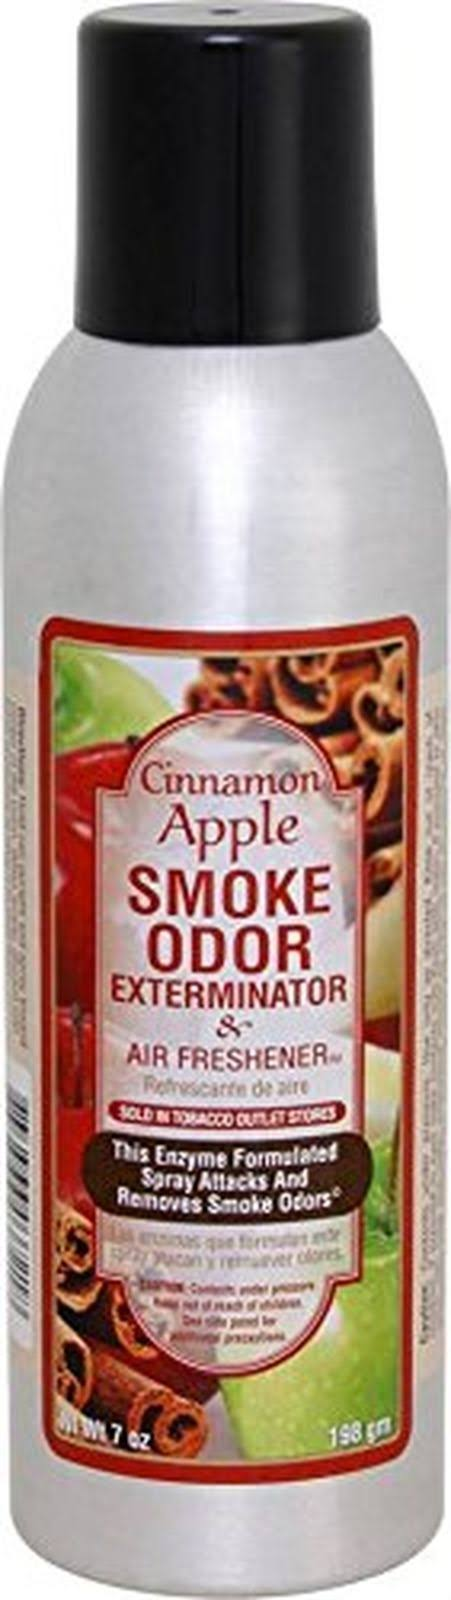 Smoke Odor Exterminator Spray - 7oz, Cinnamon Apple